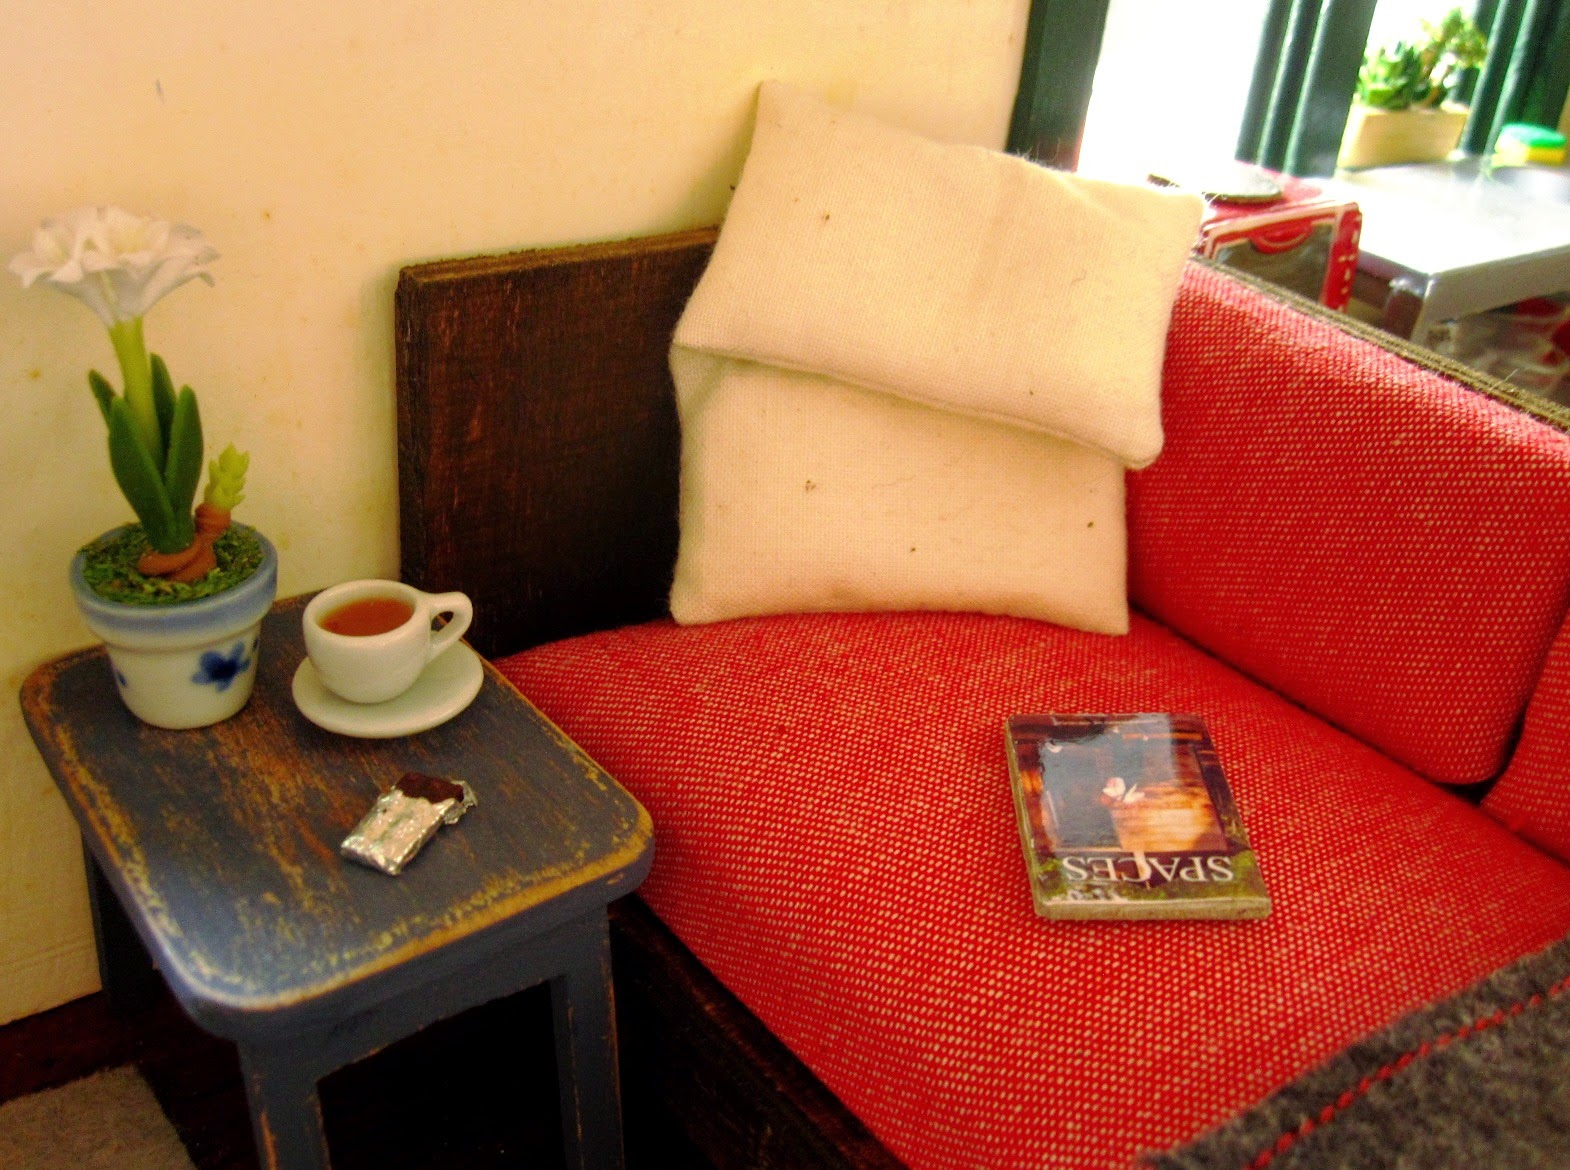 Corner of a miniature sofa, with pillows, a book and a side table holding a cup of tea and a bar of chocolate.